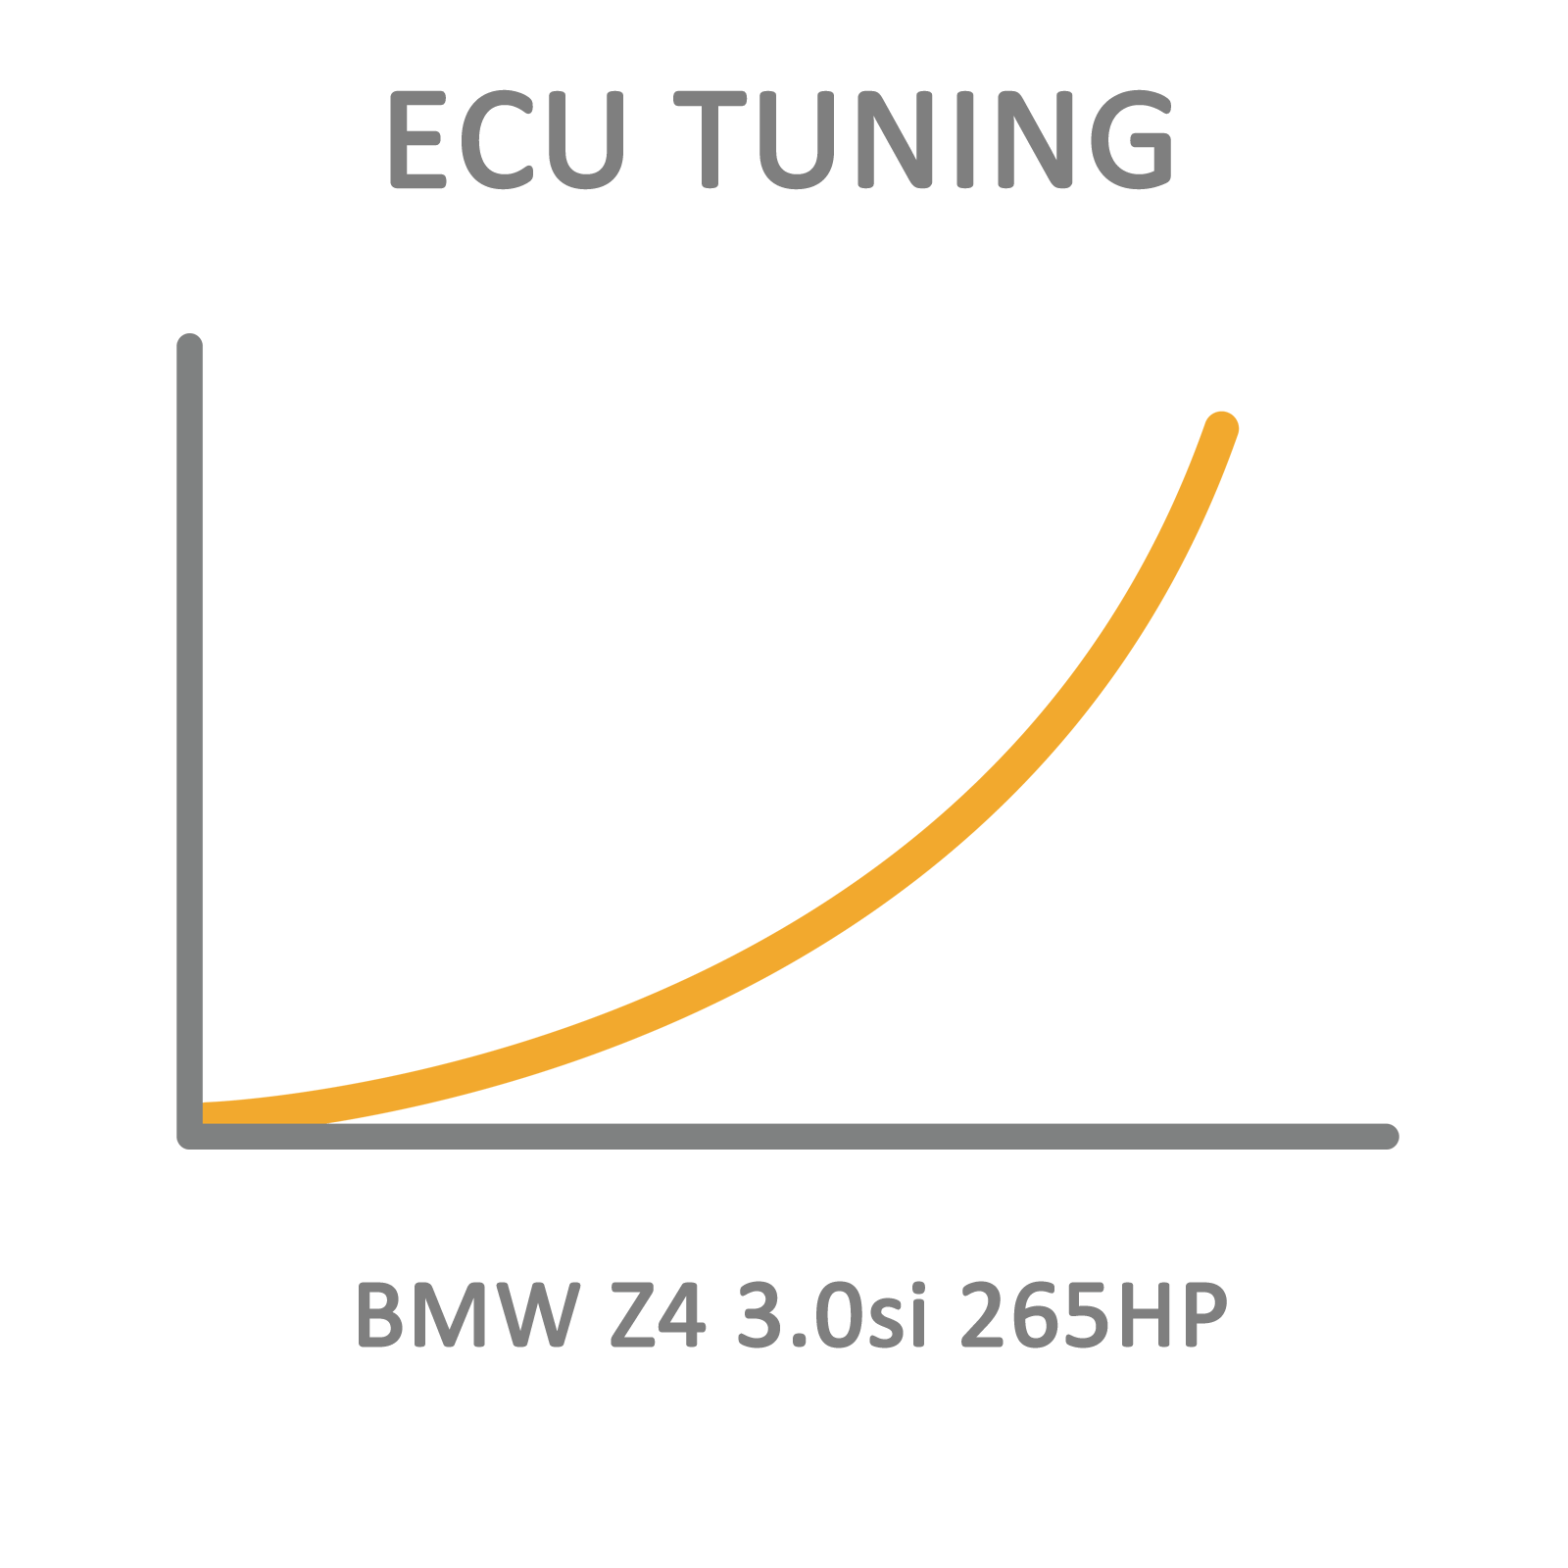 BMW Z4 3.0si 265HP ECU Tuning Remapping Programming